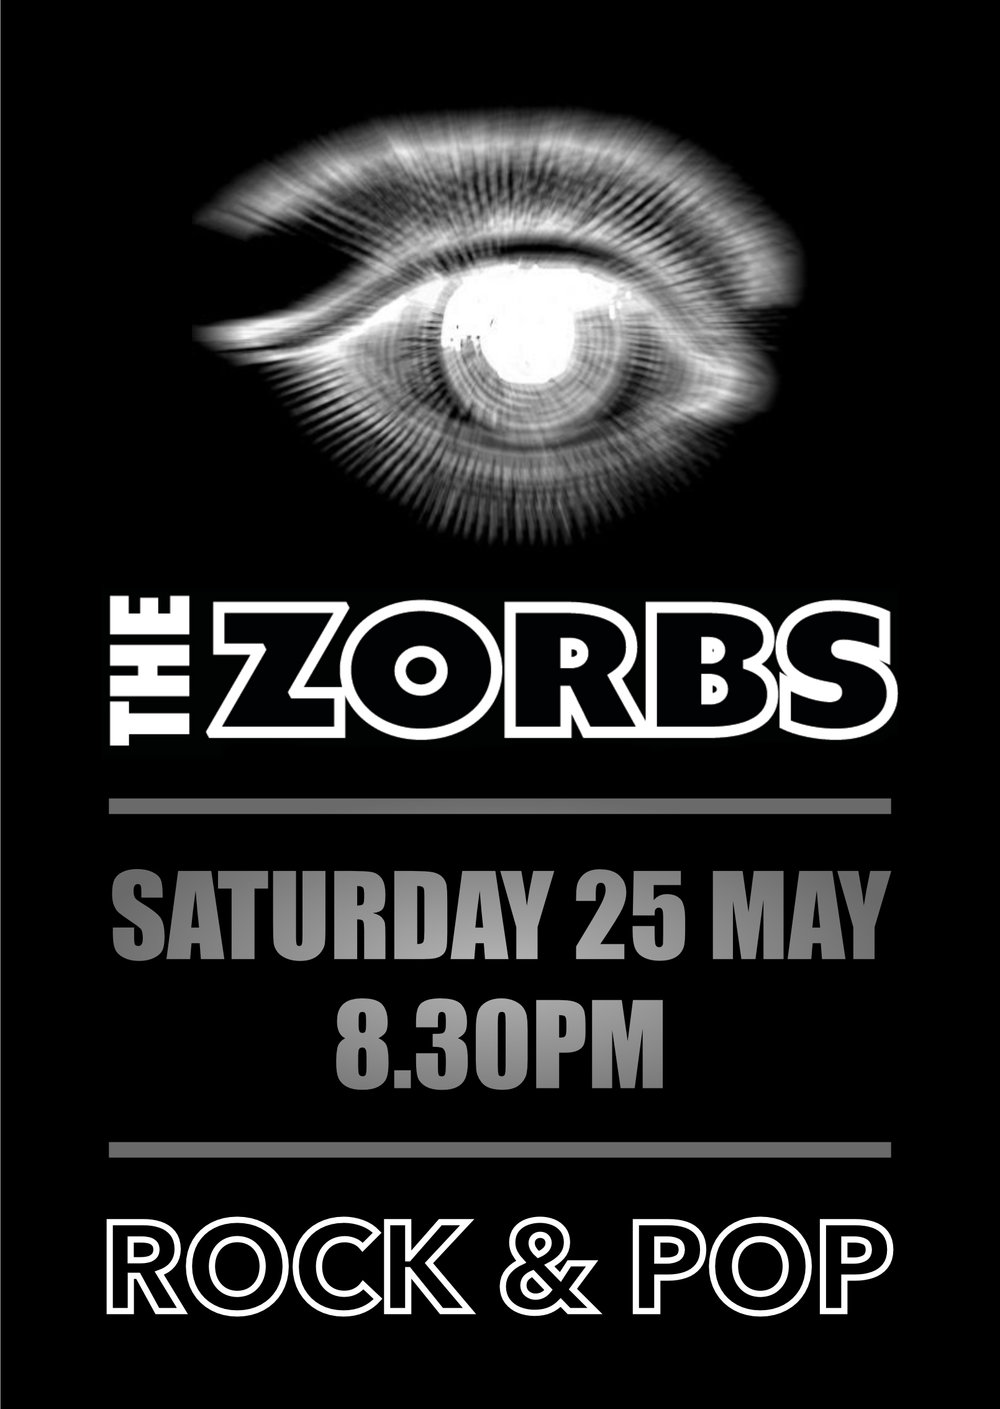 The Zorbs